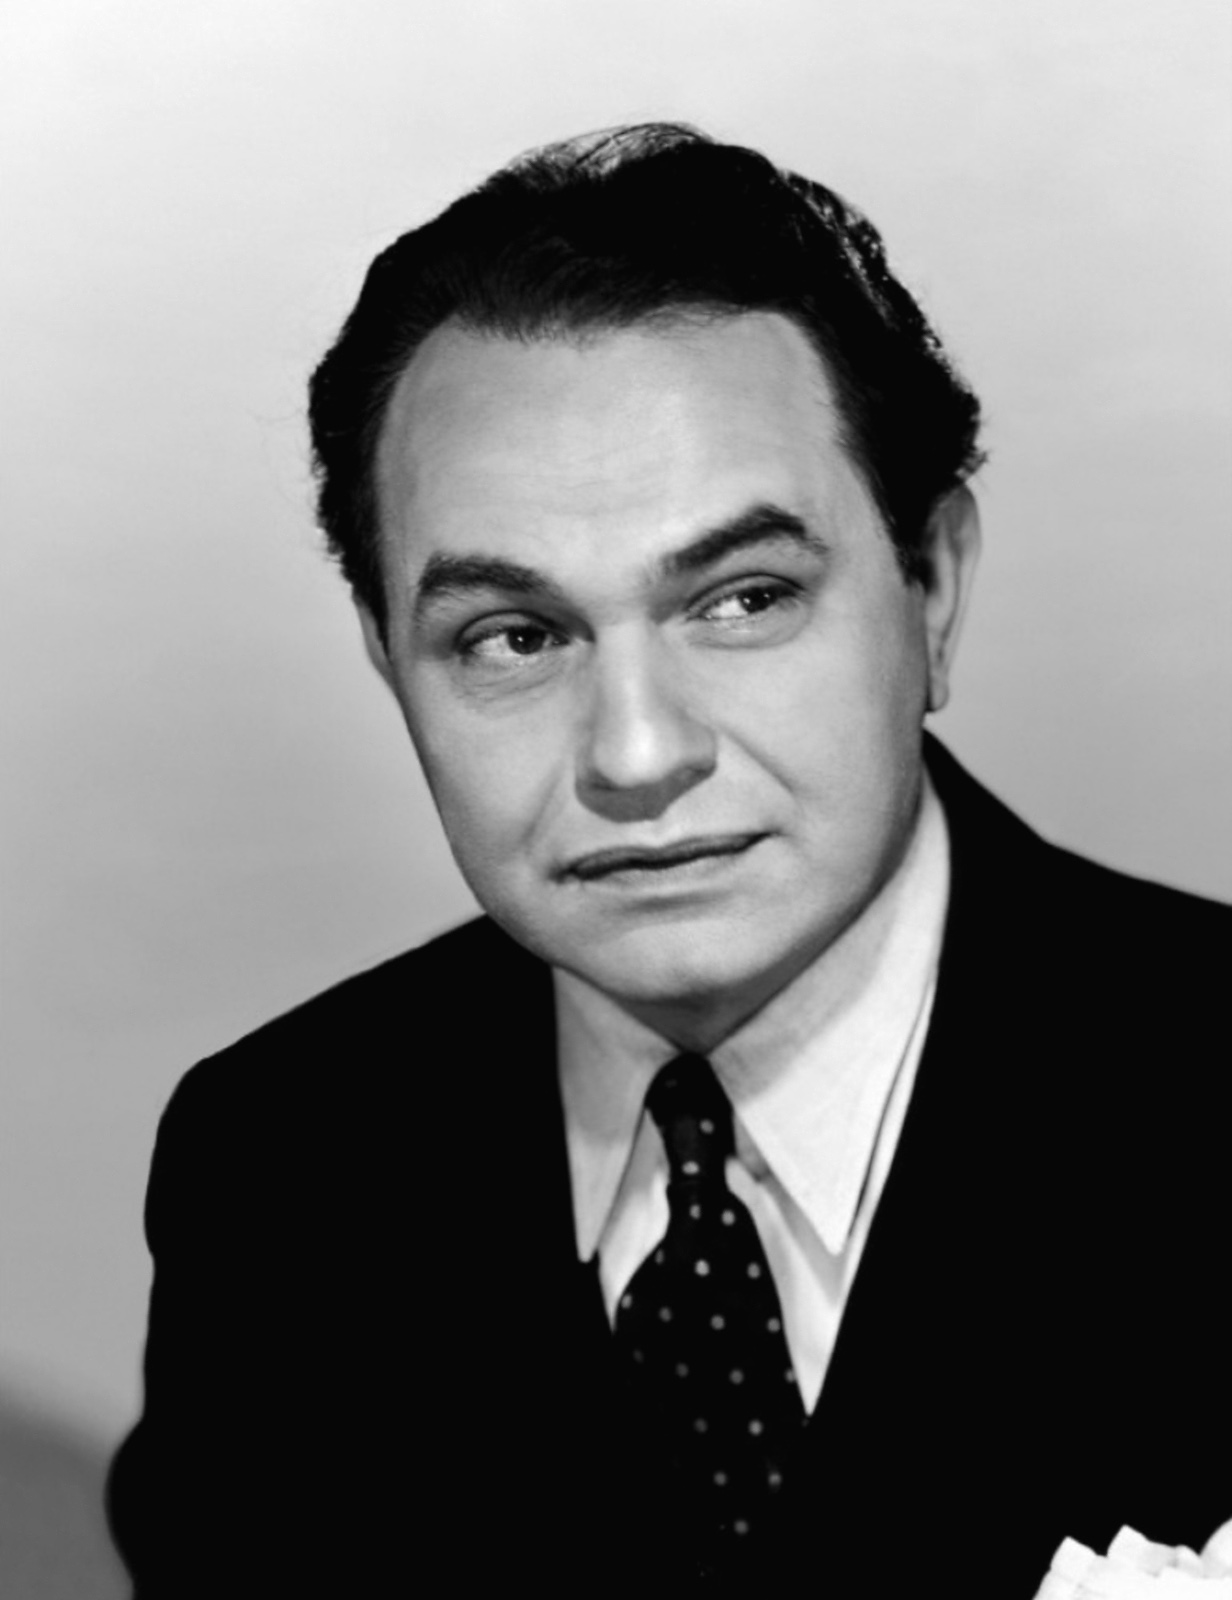 Edward G Robinson Net Worth